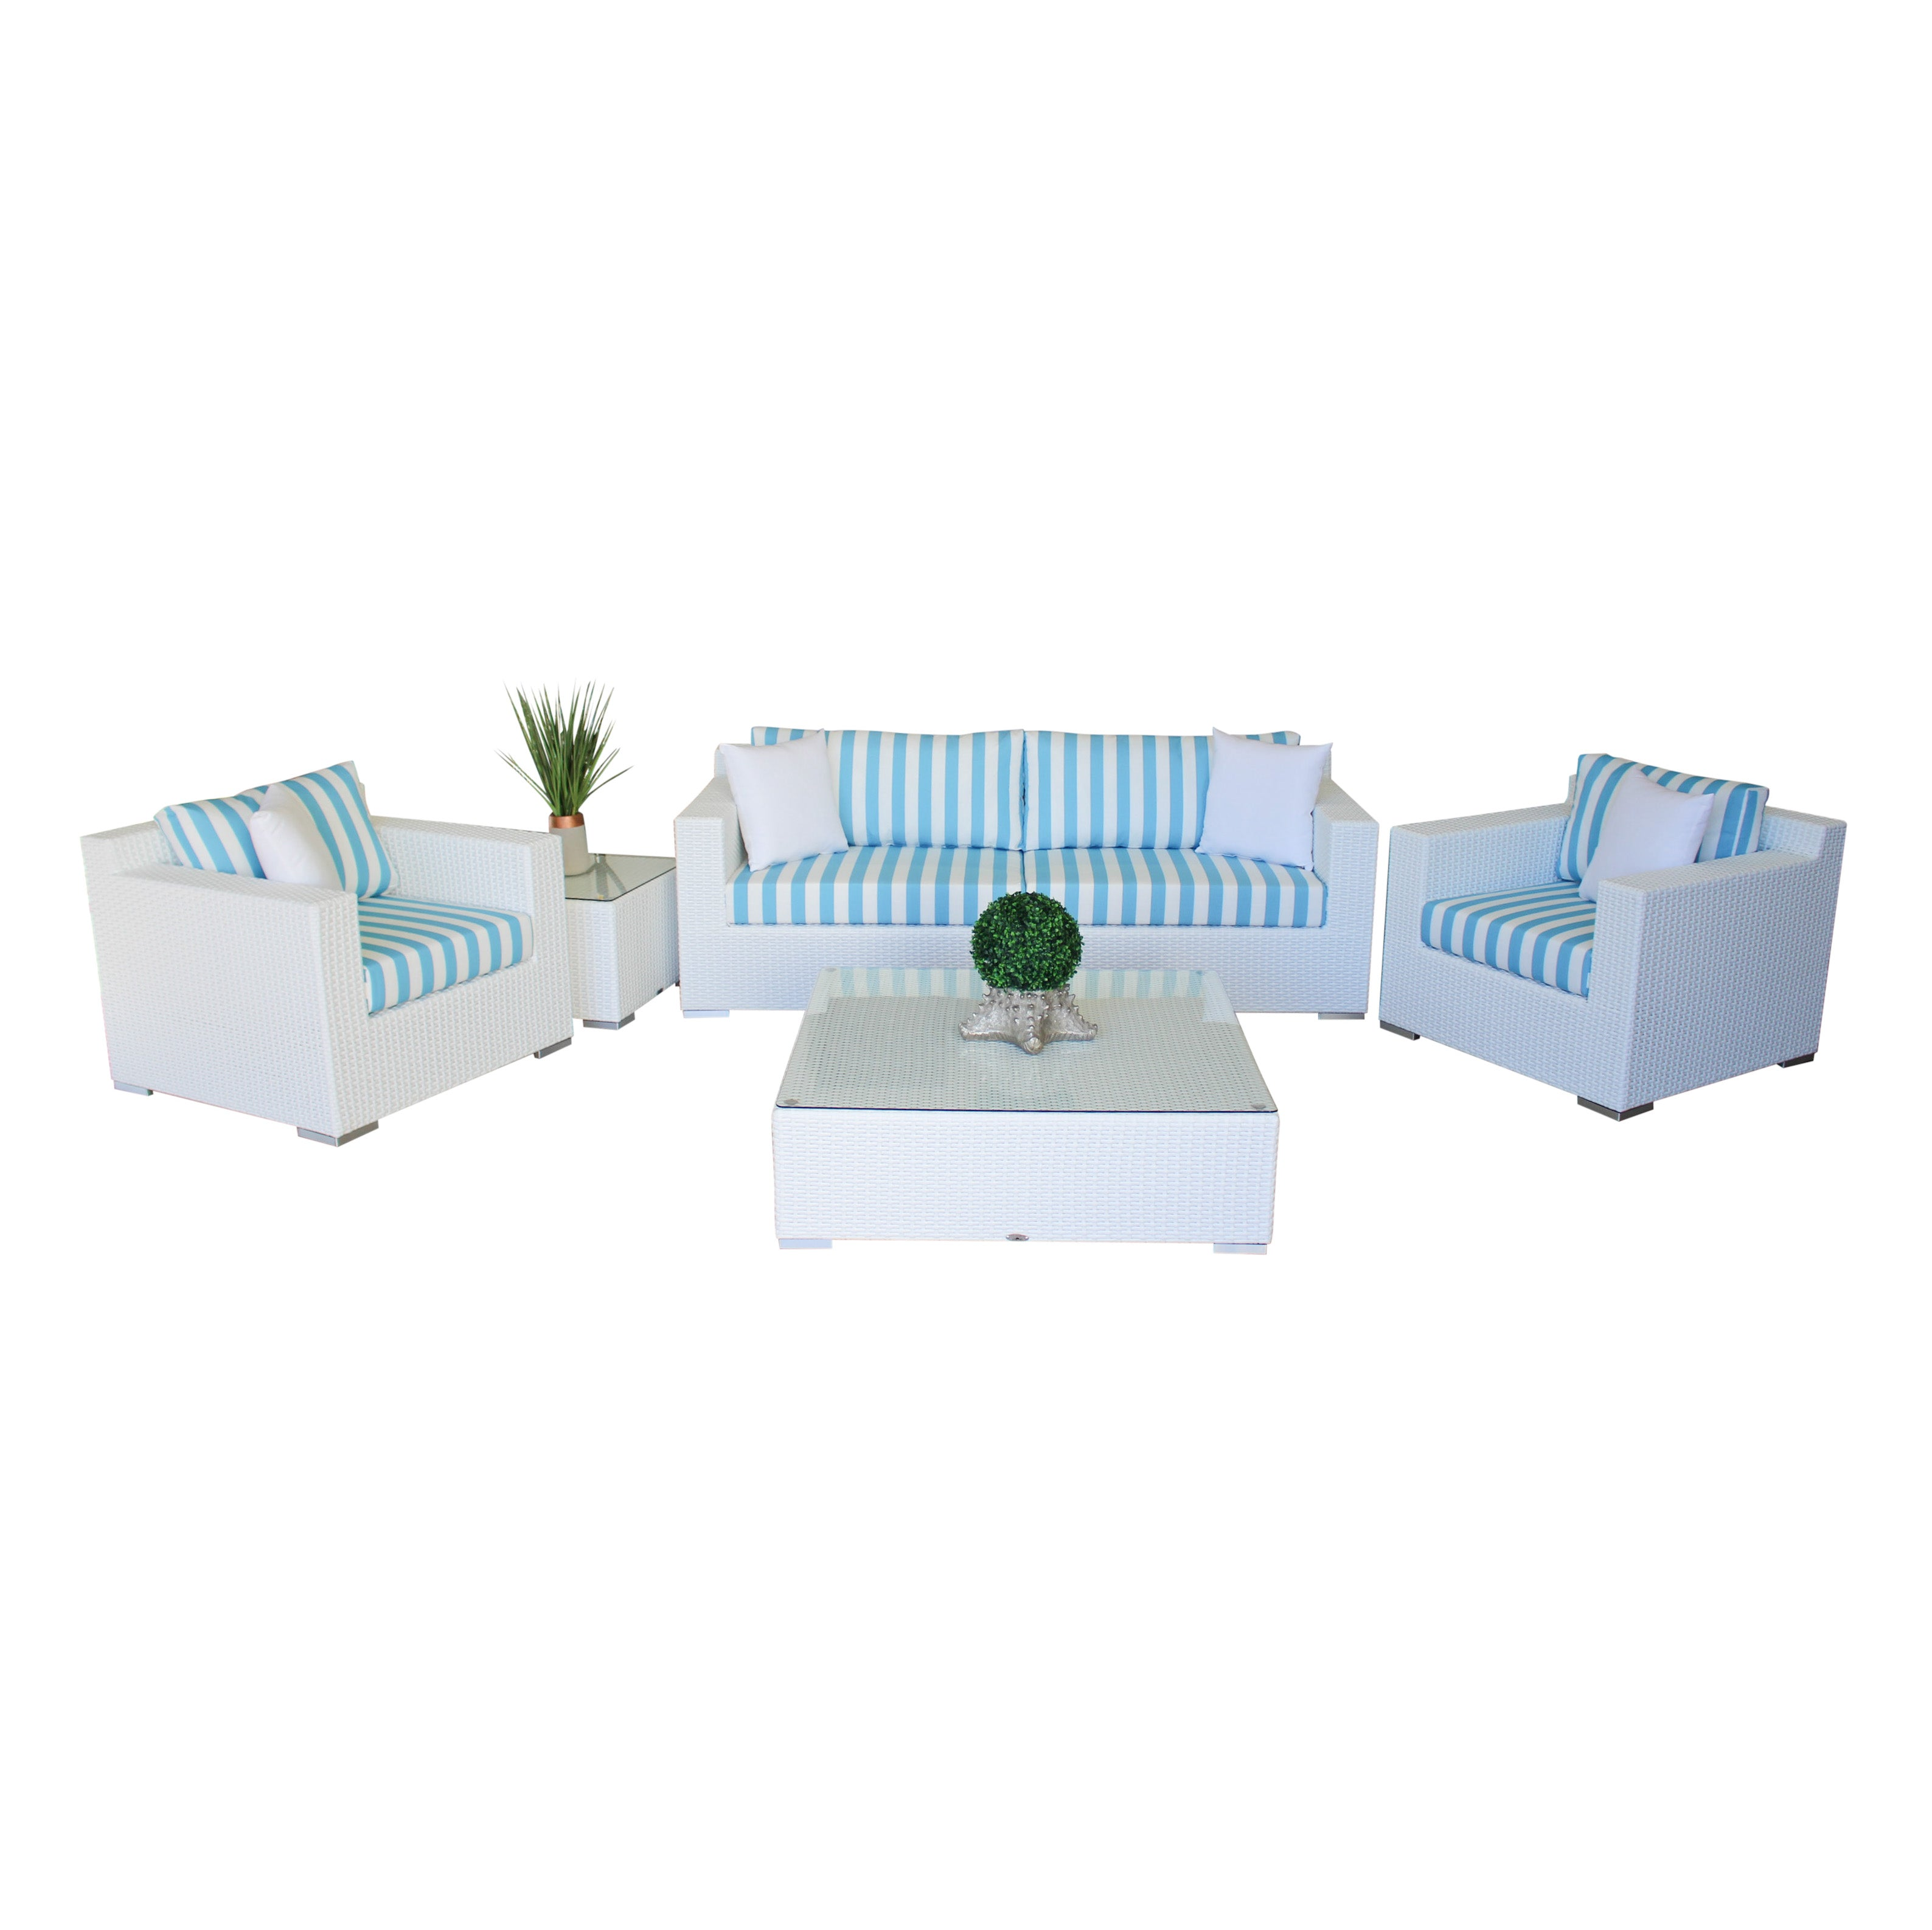 Bahamas - 6pc. Sofa Set